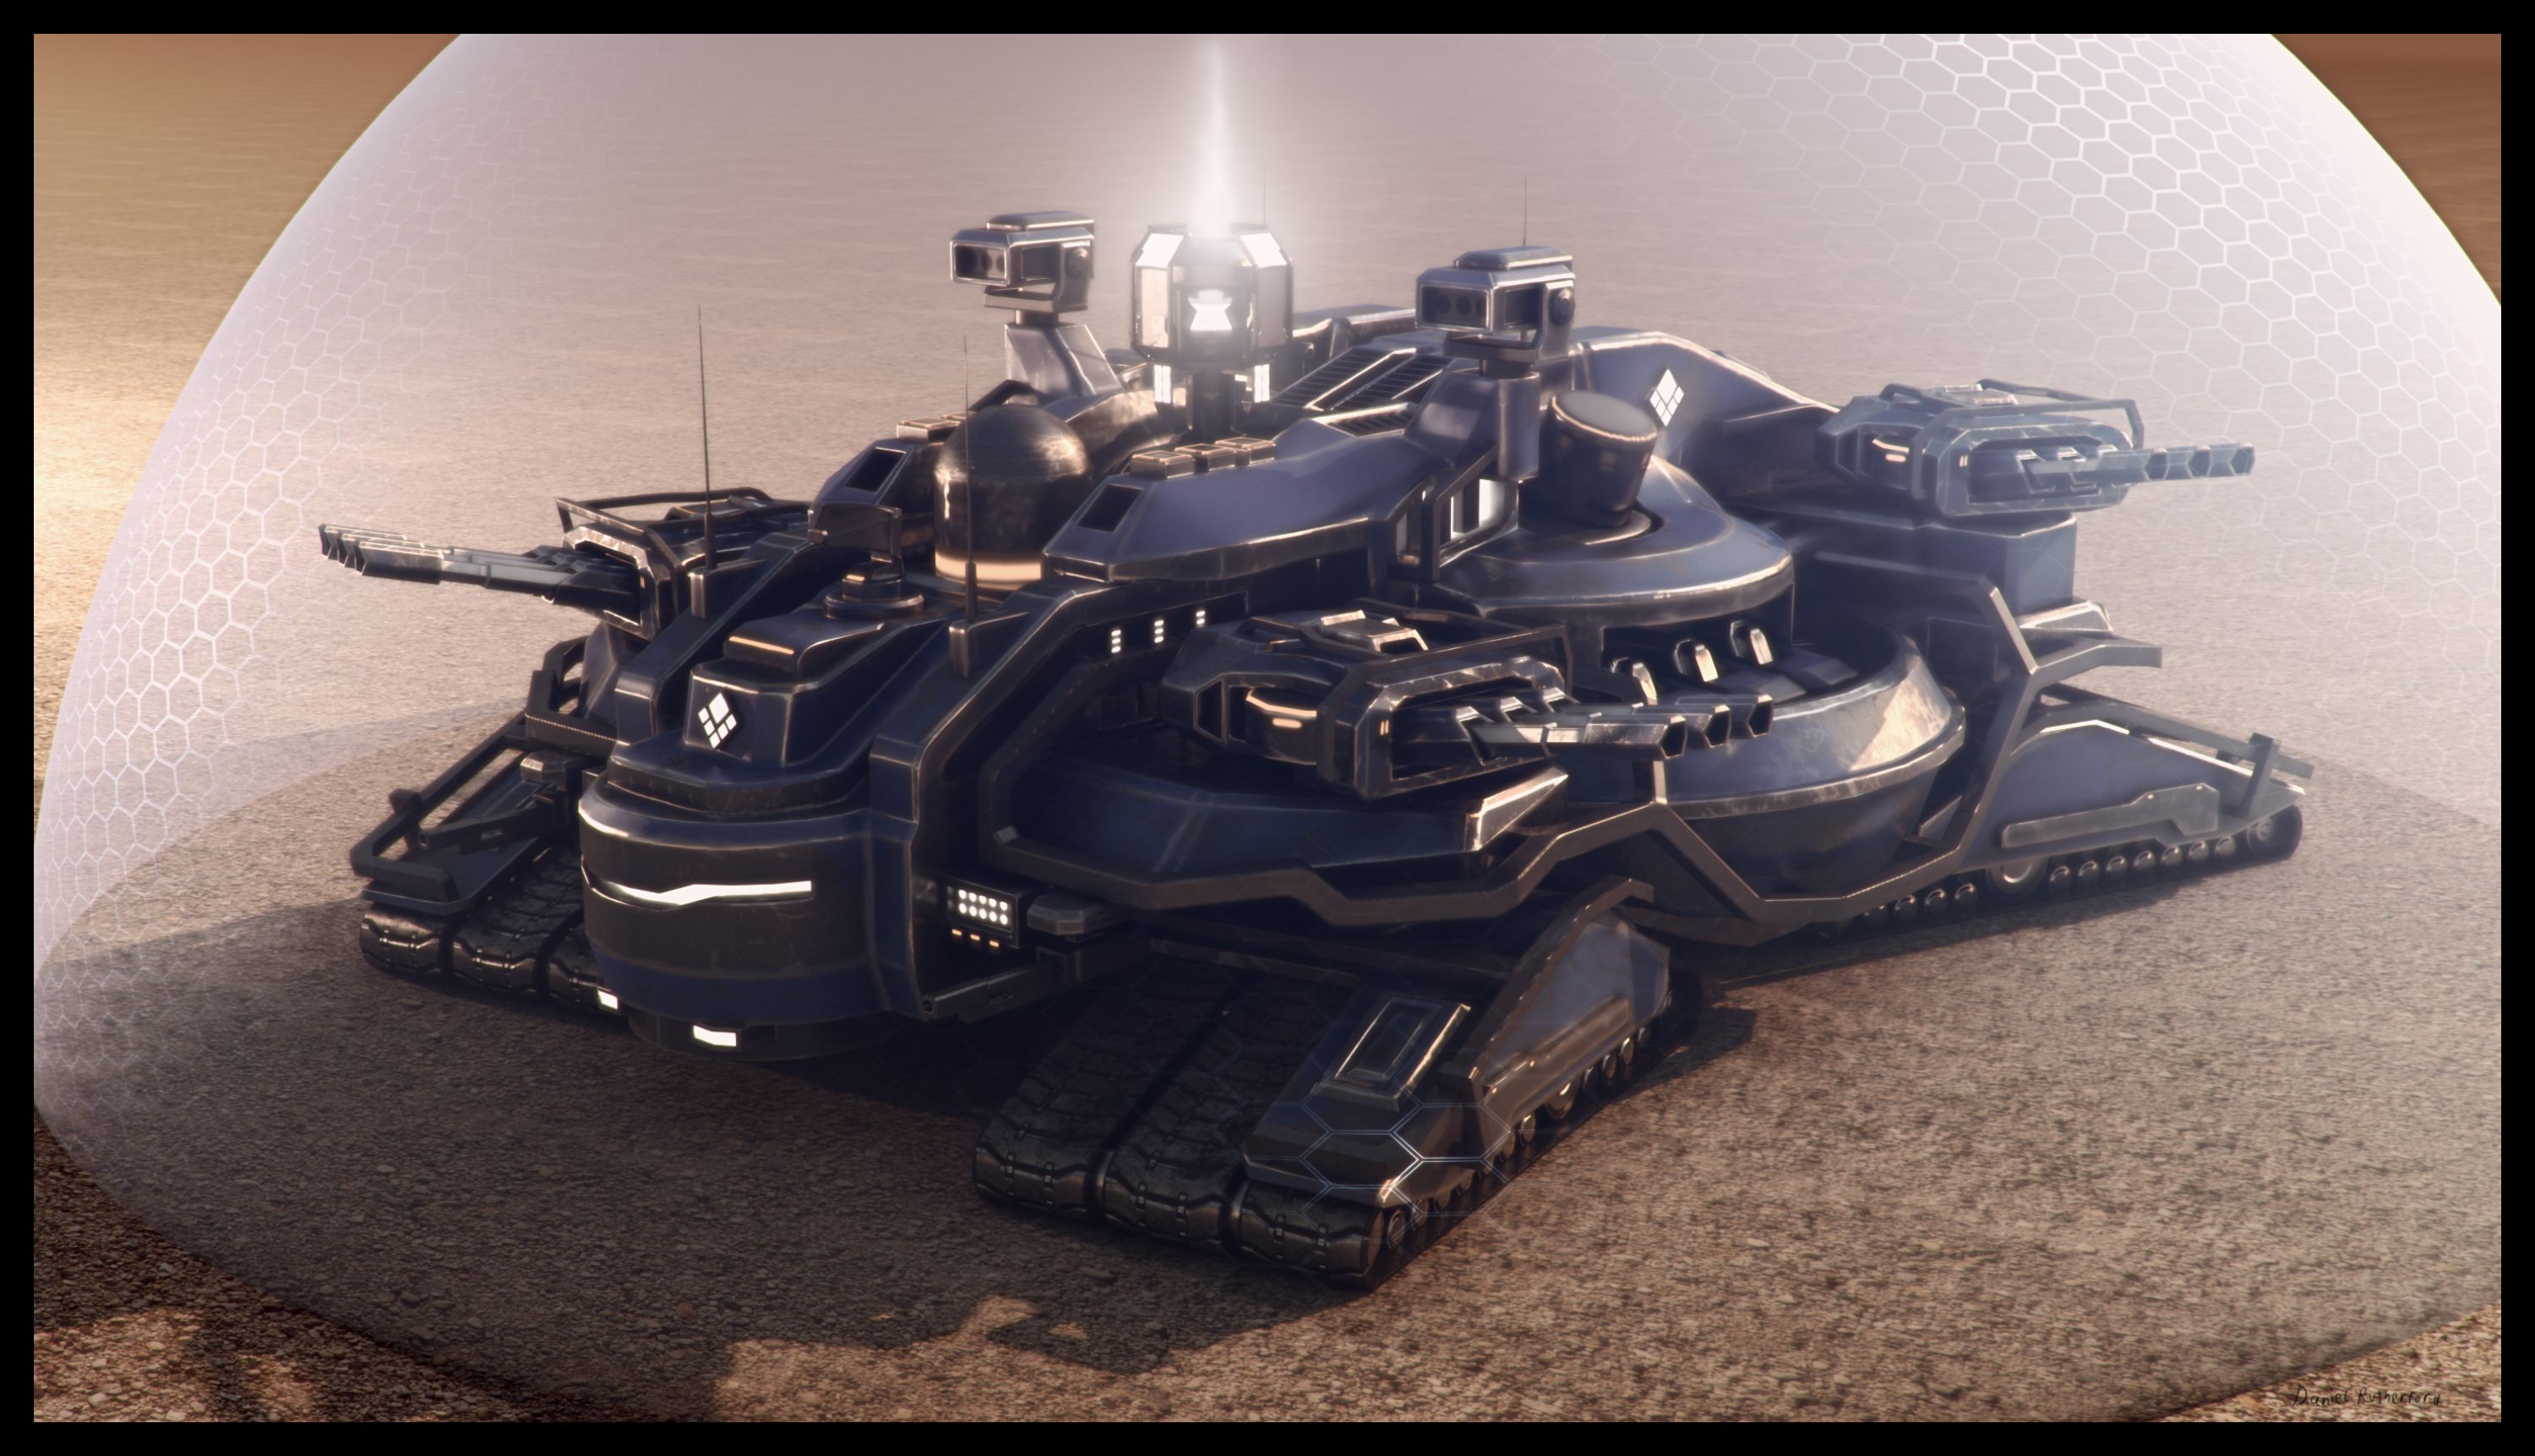 Fatboy Mk 4 Image Revamp Expansion Mod Rve Mod For Supreme Commander 2 Futuristic Cars Army Vehicles Tanks Military